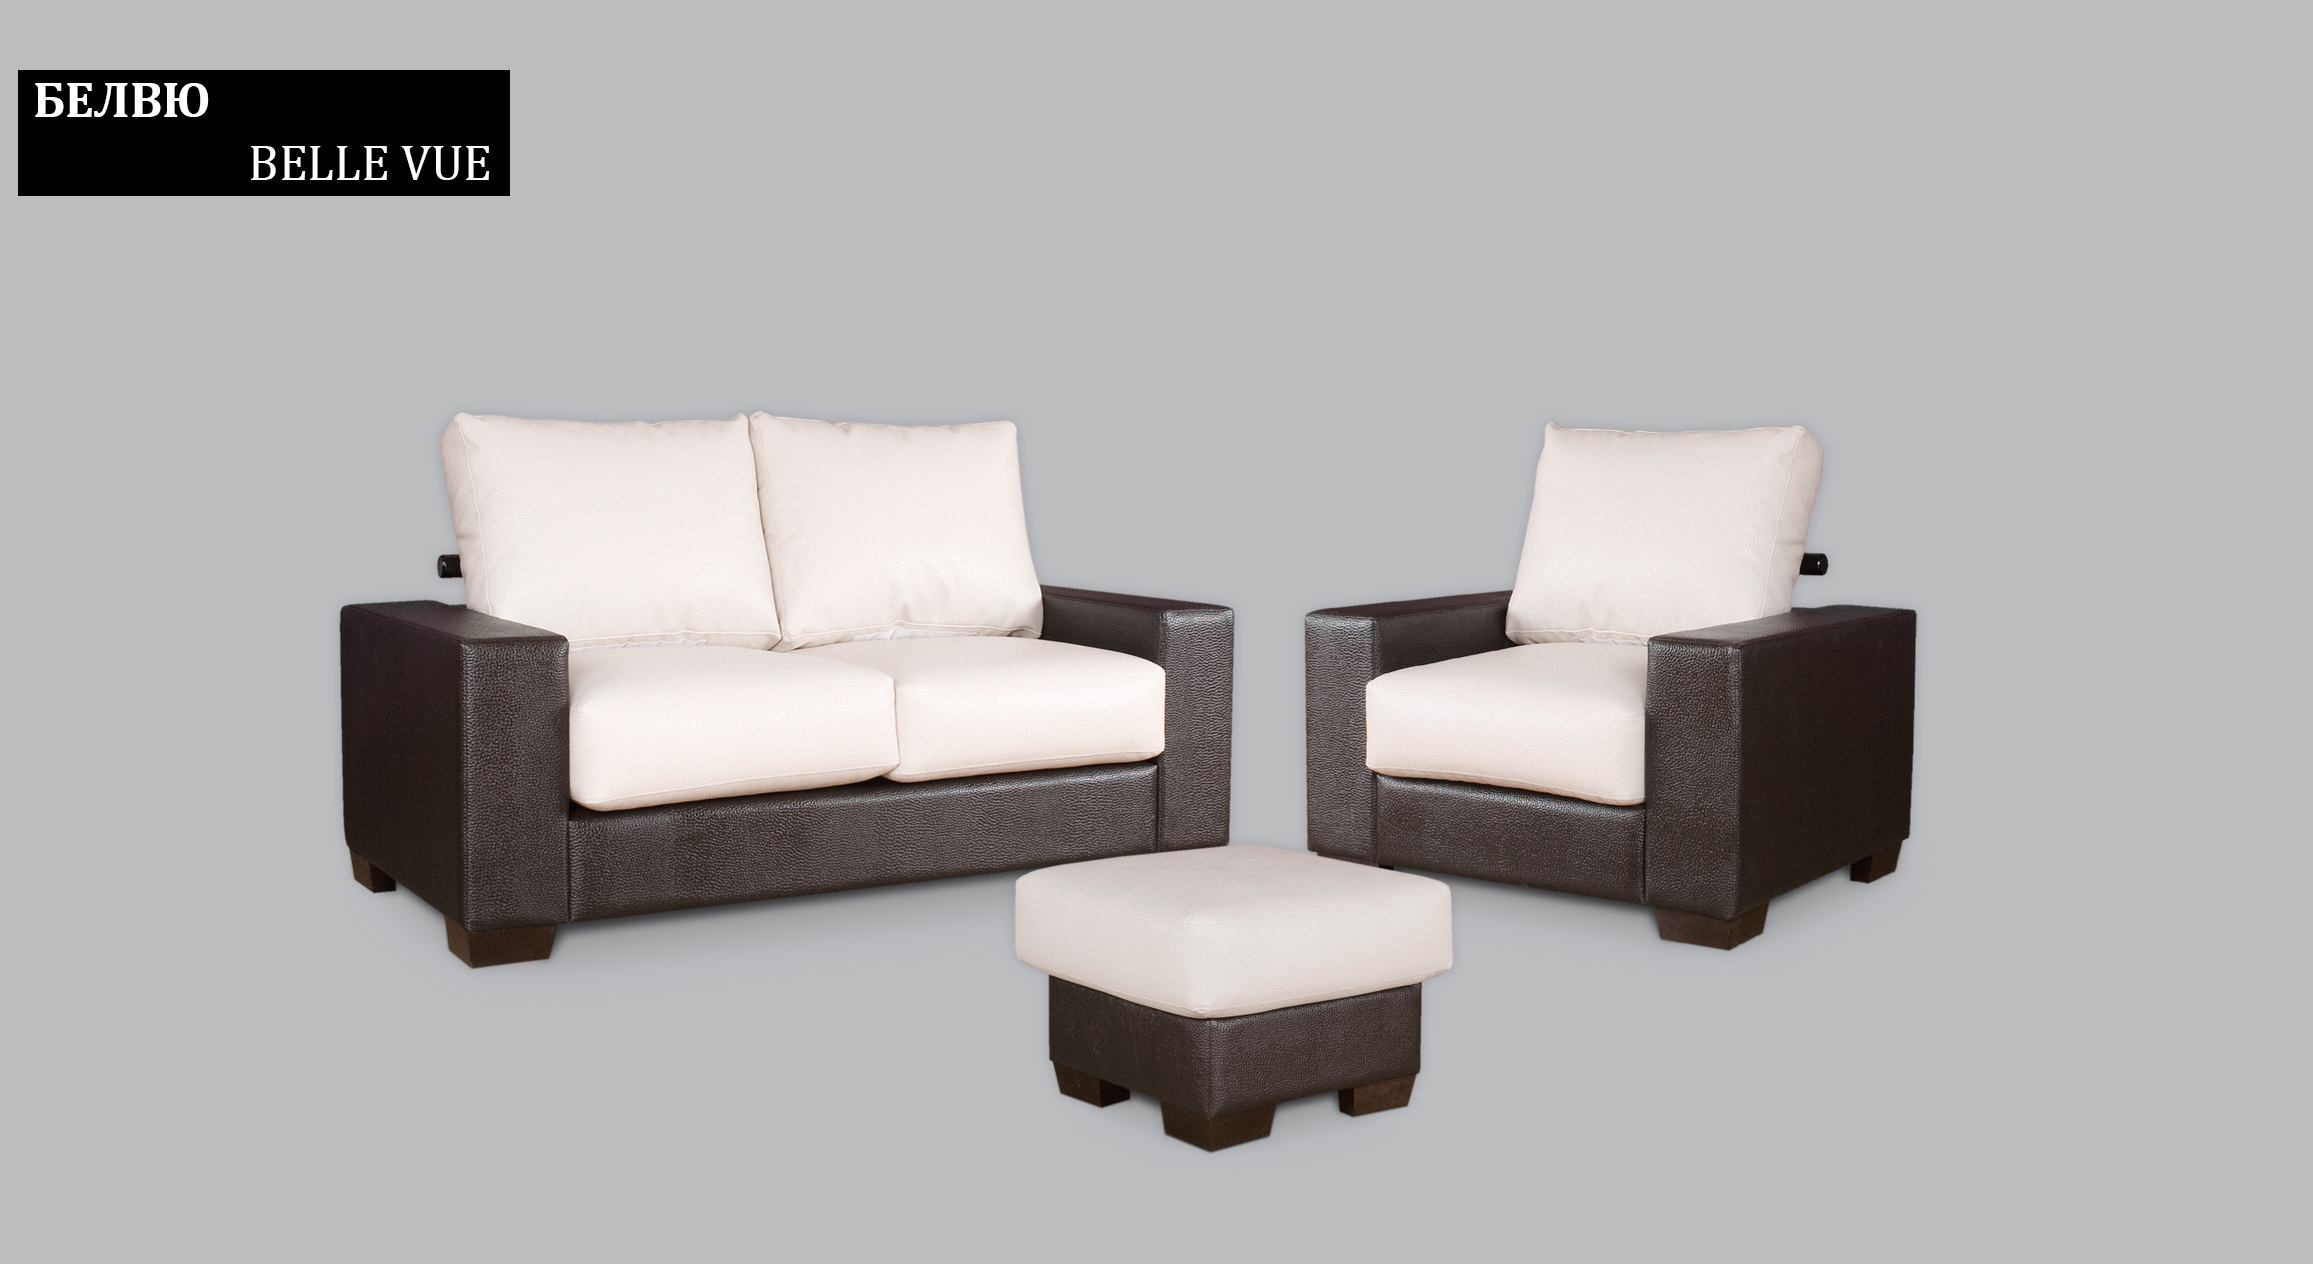 Sofa quotbellevuequot standard sofas by rudi an for Sofa couch bellevue